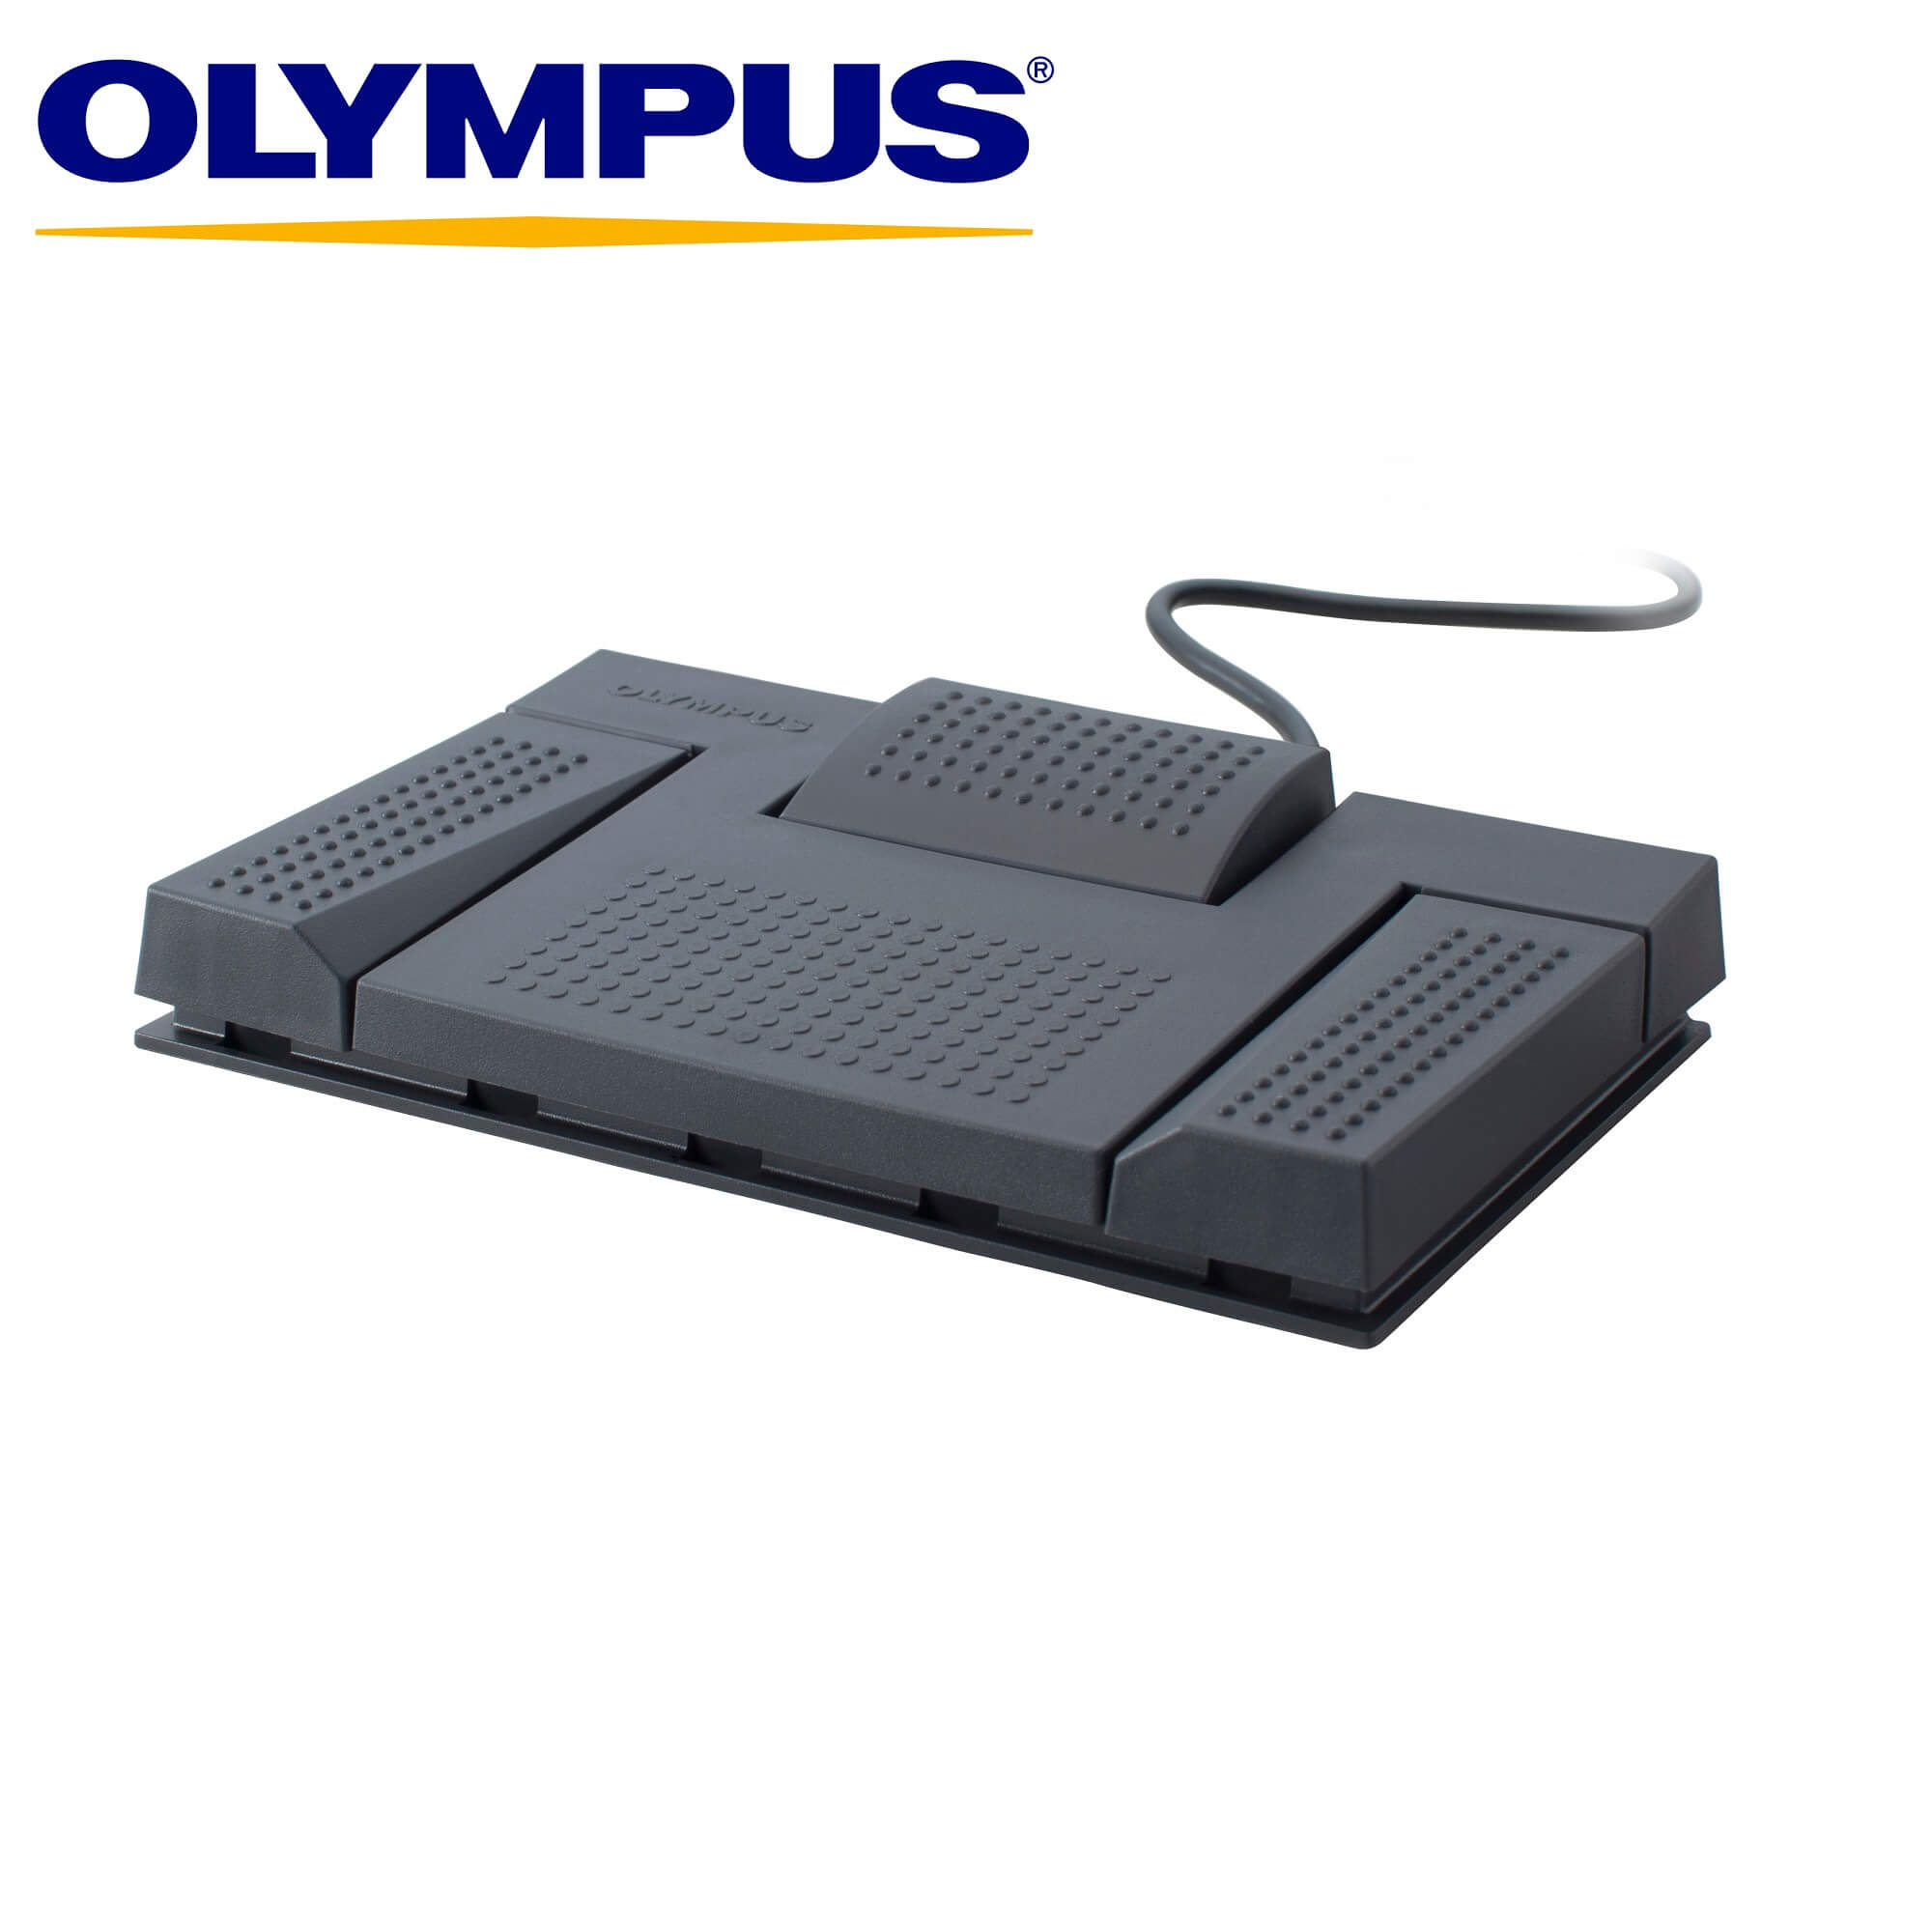 OLYMPUS RS28 WINDOWS 7 DRIVERS DOWNLOAD